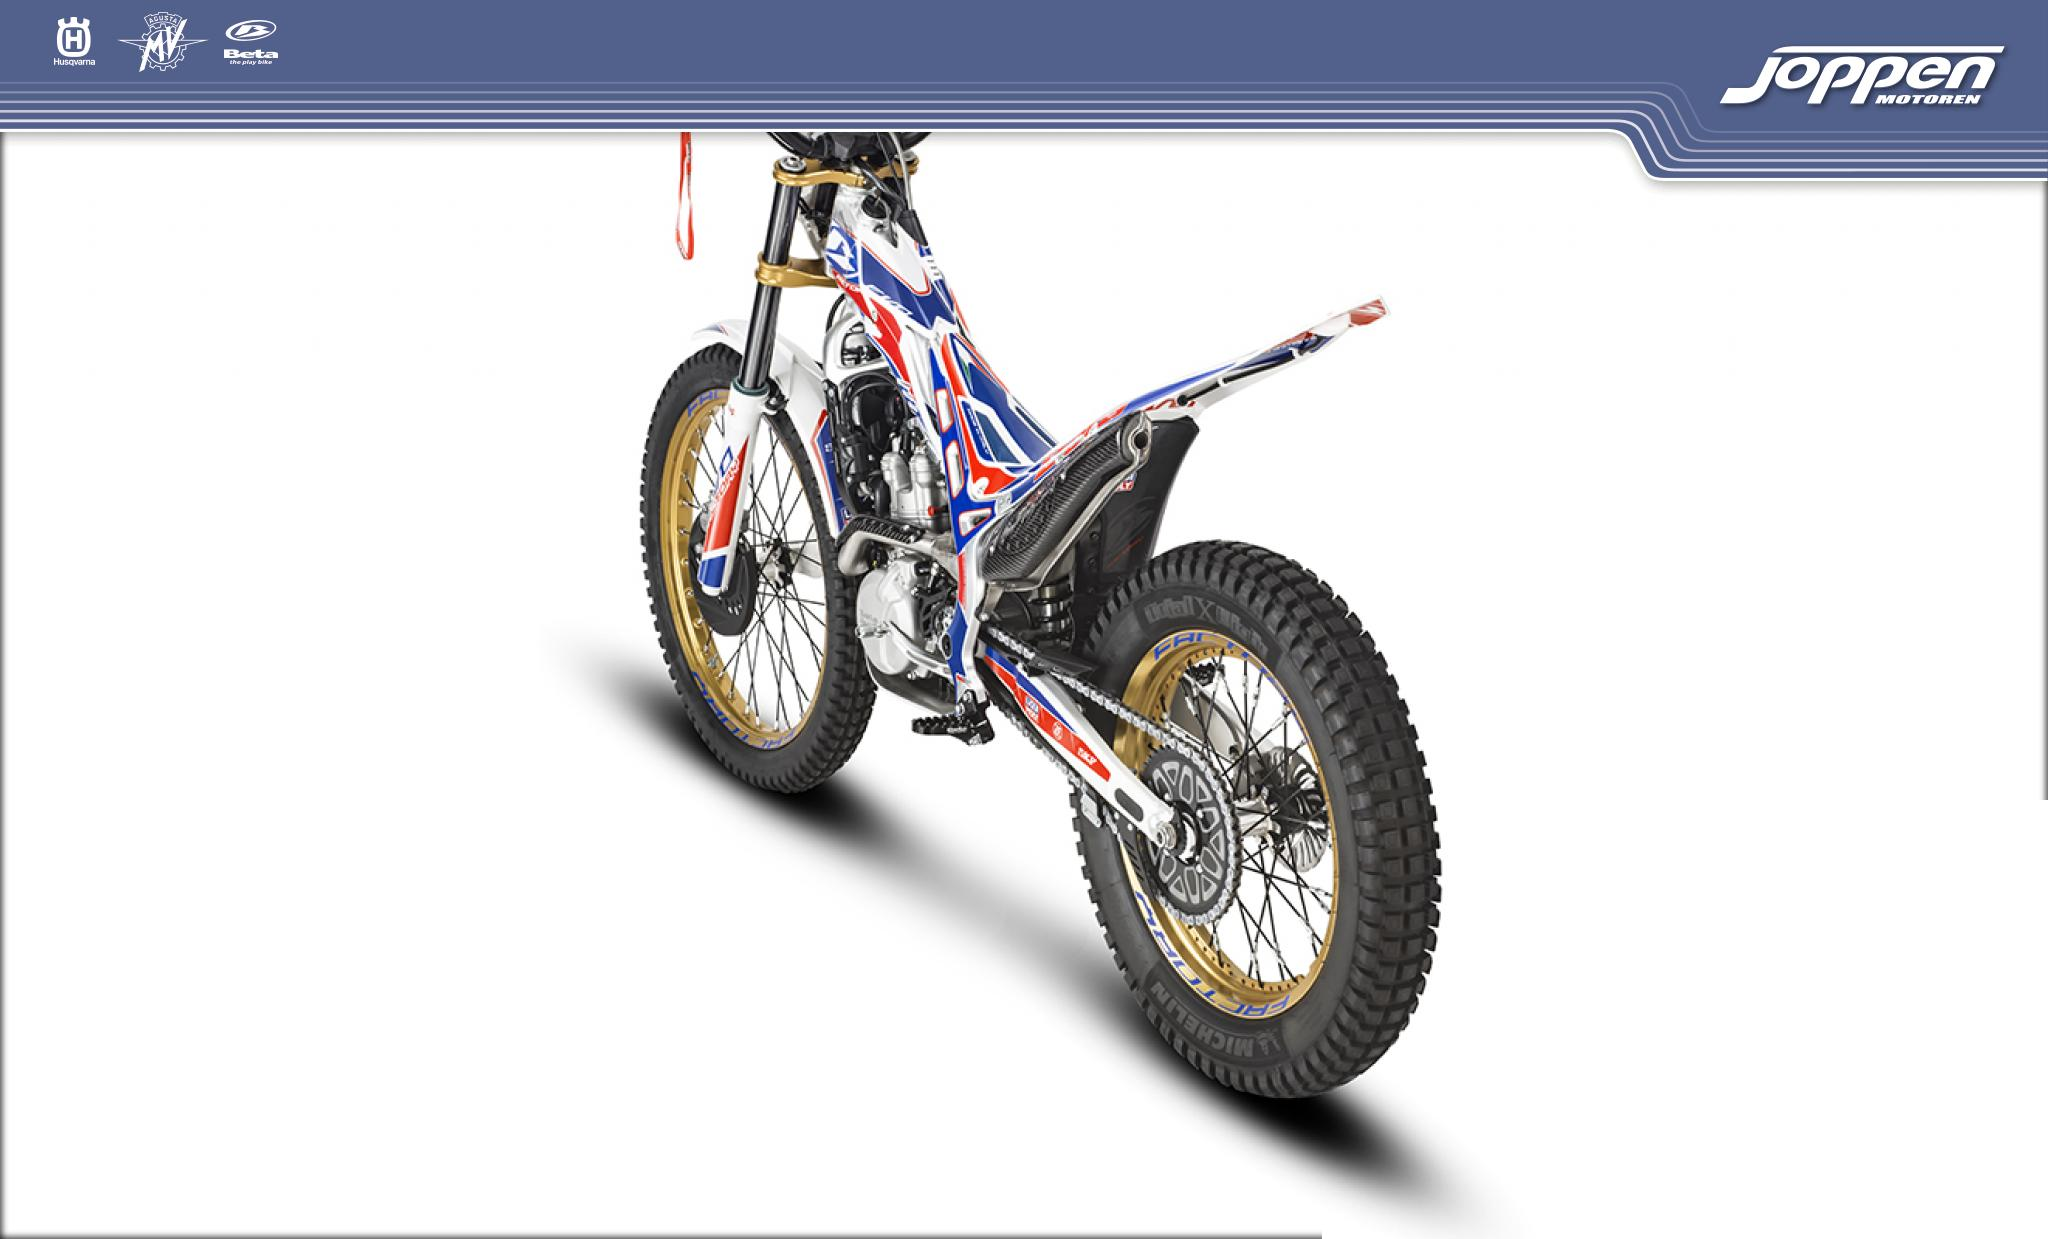 Beta EVO 300 4T Factory 2020 blauw/rood/wit - Off road